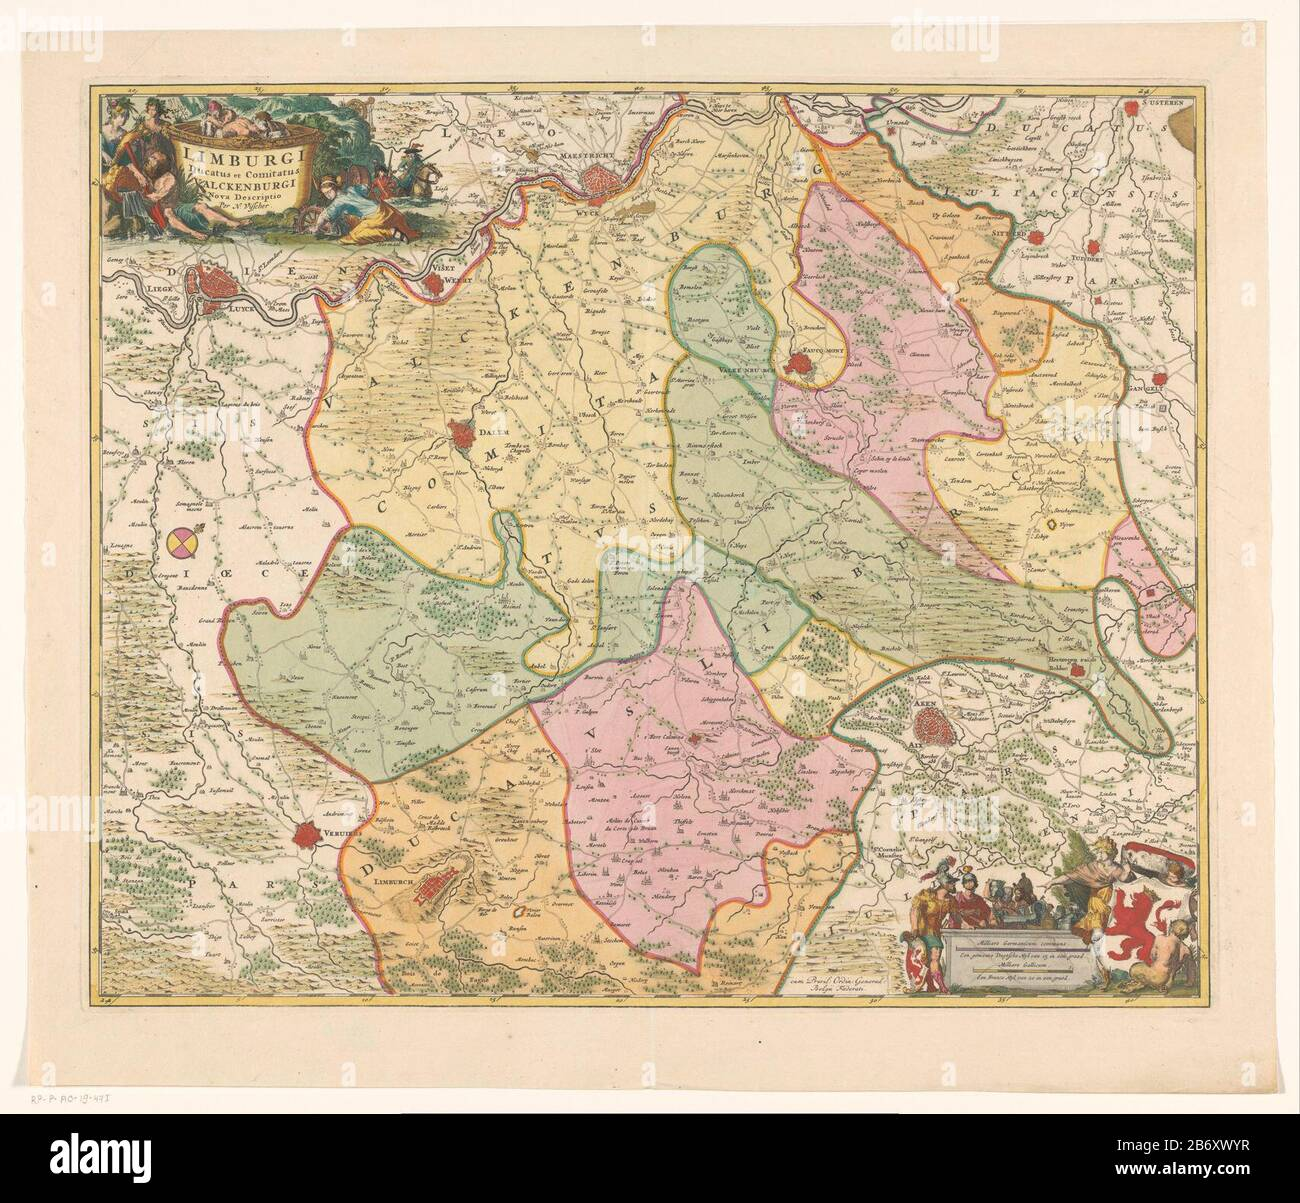 Kaart van het hertogdom Limburg en het graafschap Valkenburg Limburgi ducatus et comitatus Valckenburgi (titel op object) Map of the Duchy of Limburg and the county Valkenburg. Top left the title cartouche. Right a cartouche with the arms of the Duchy of Limburg and two shell sticks: A nasty Duytsche Myl 15 in graed / A France Myl 20 in graed. The card has a degree distribution along the randen. Manufacturer : printmaker: anonymous publisher: Nicolaes Visscher (I) (listed building) publisher: Nicolaes Visscher (II) (listed building) publisher: widow Nicolaes Visscher (II) (possibly) provider o Stock Photo